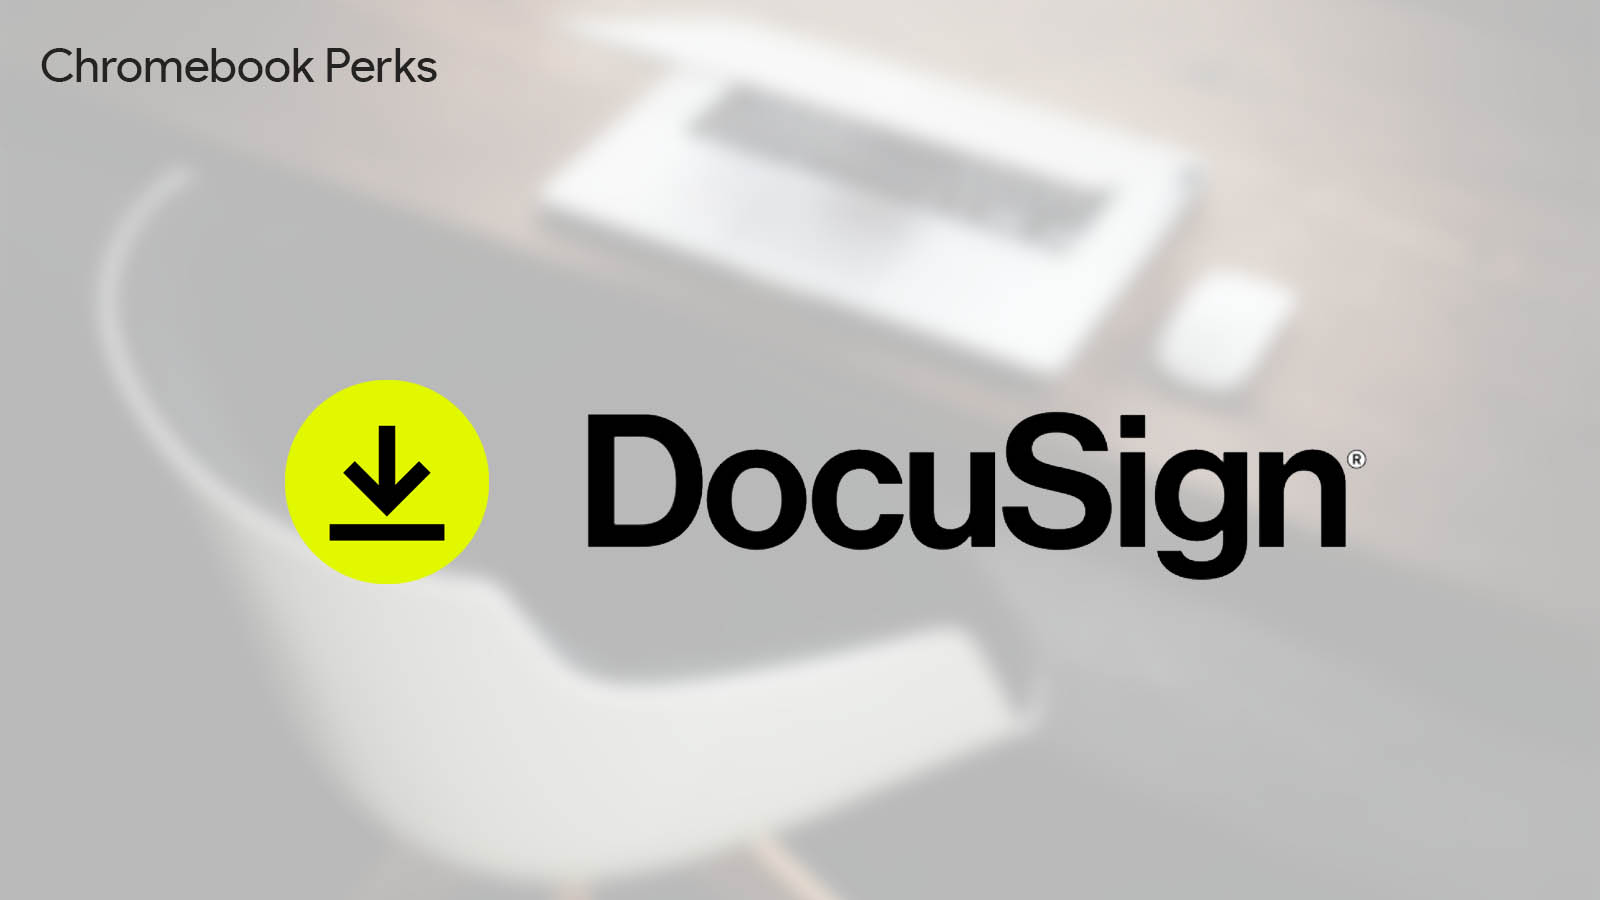 DocuSign joins the Chromebook Perks lineup – claim 2 free months now